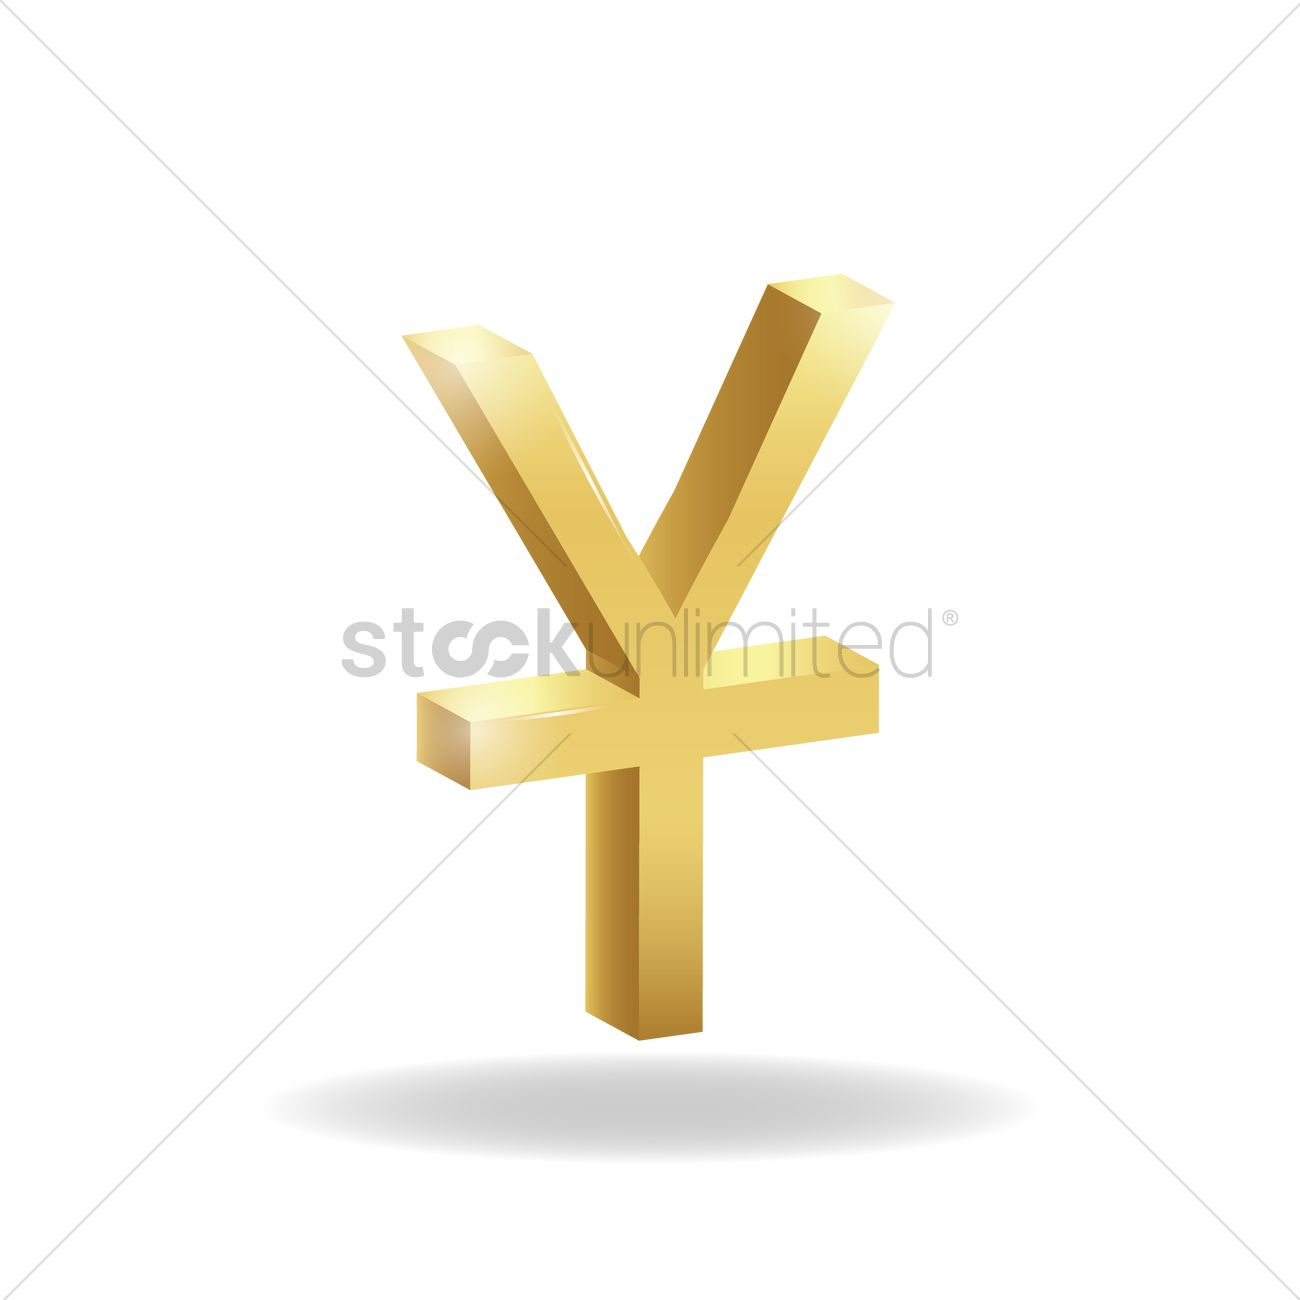 3d chinese yuan currency symbol vector image 1827766 3d chinese yuan currency symbol vector graphic biocorpaavc